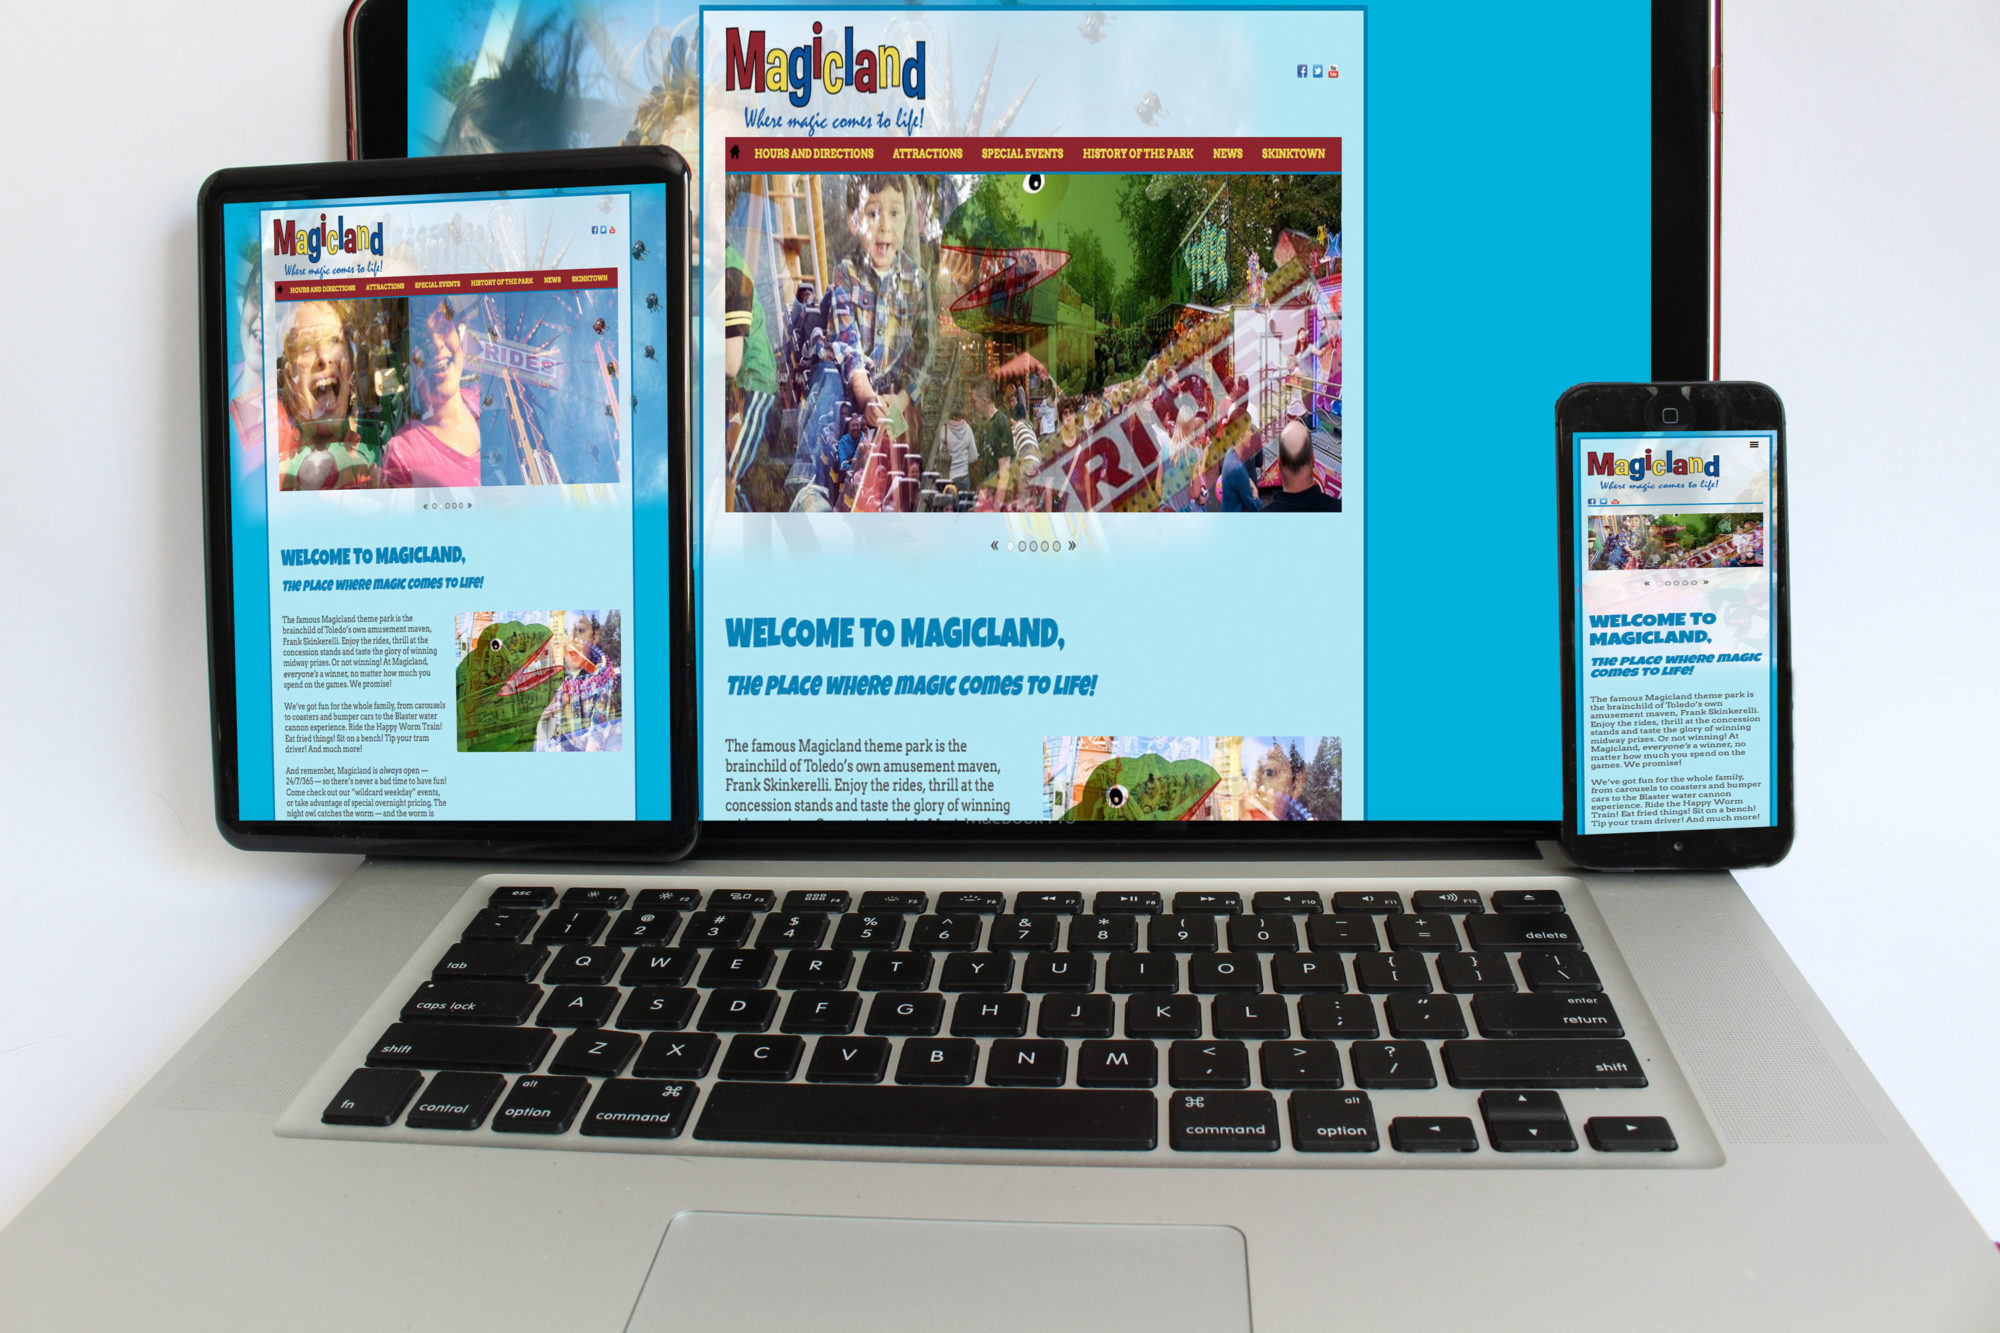 Magicland Theme Park home page